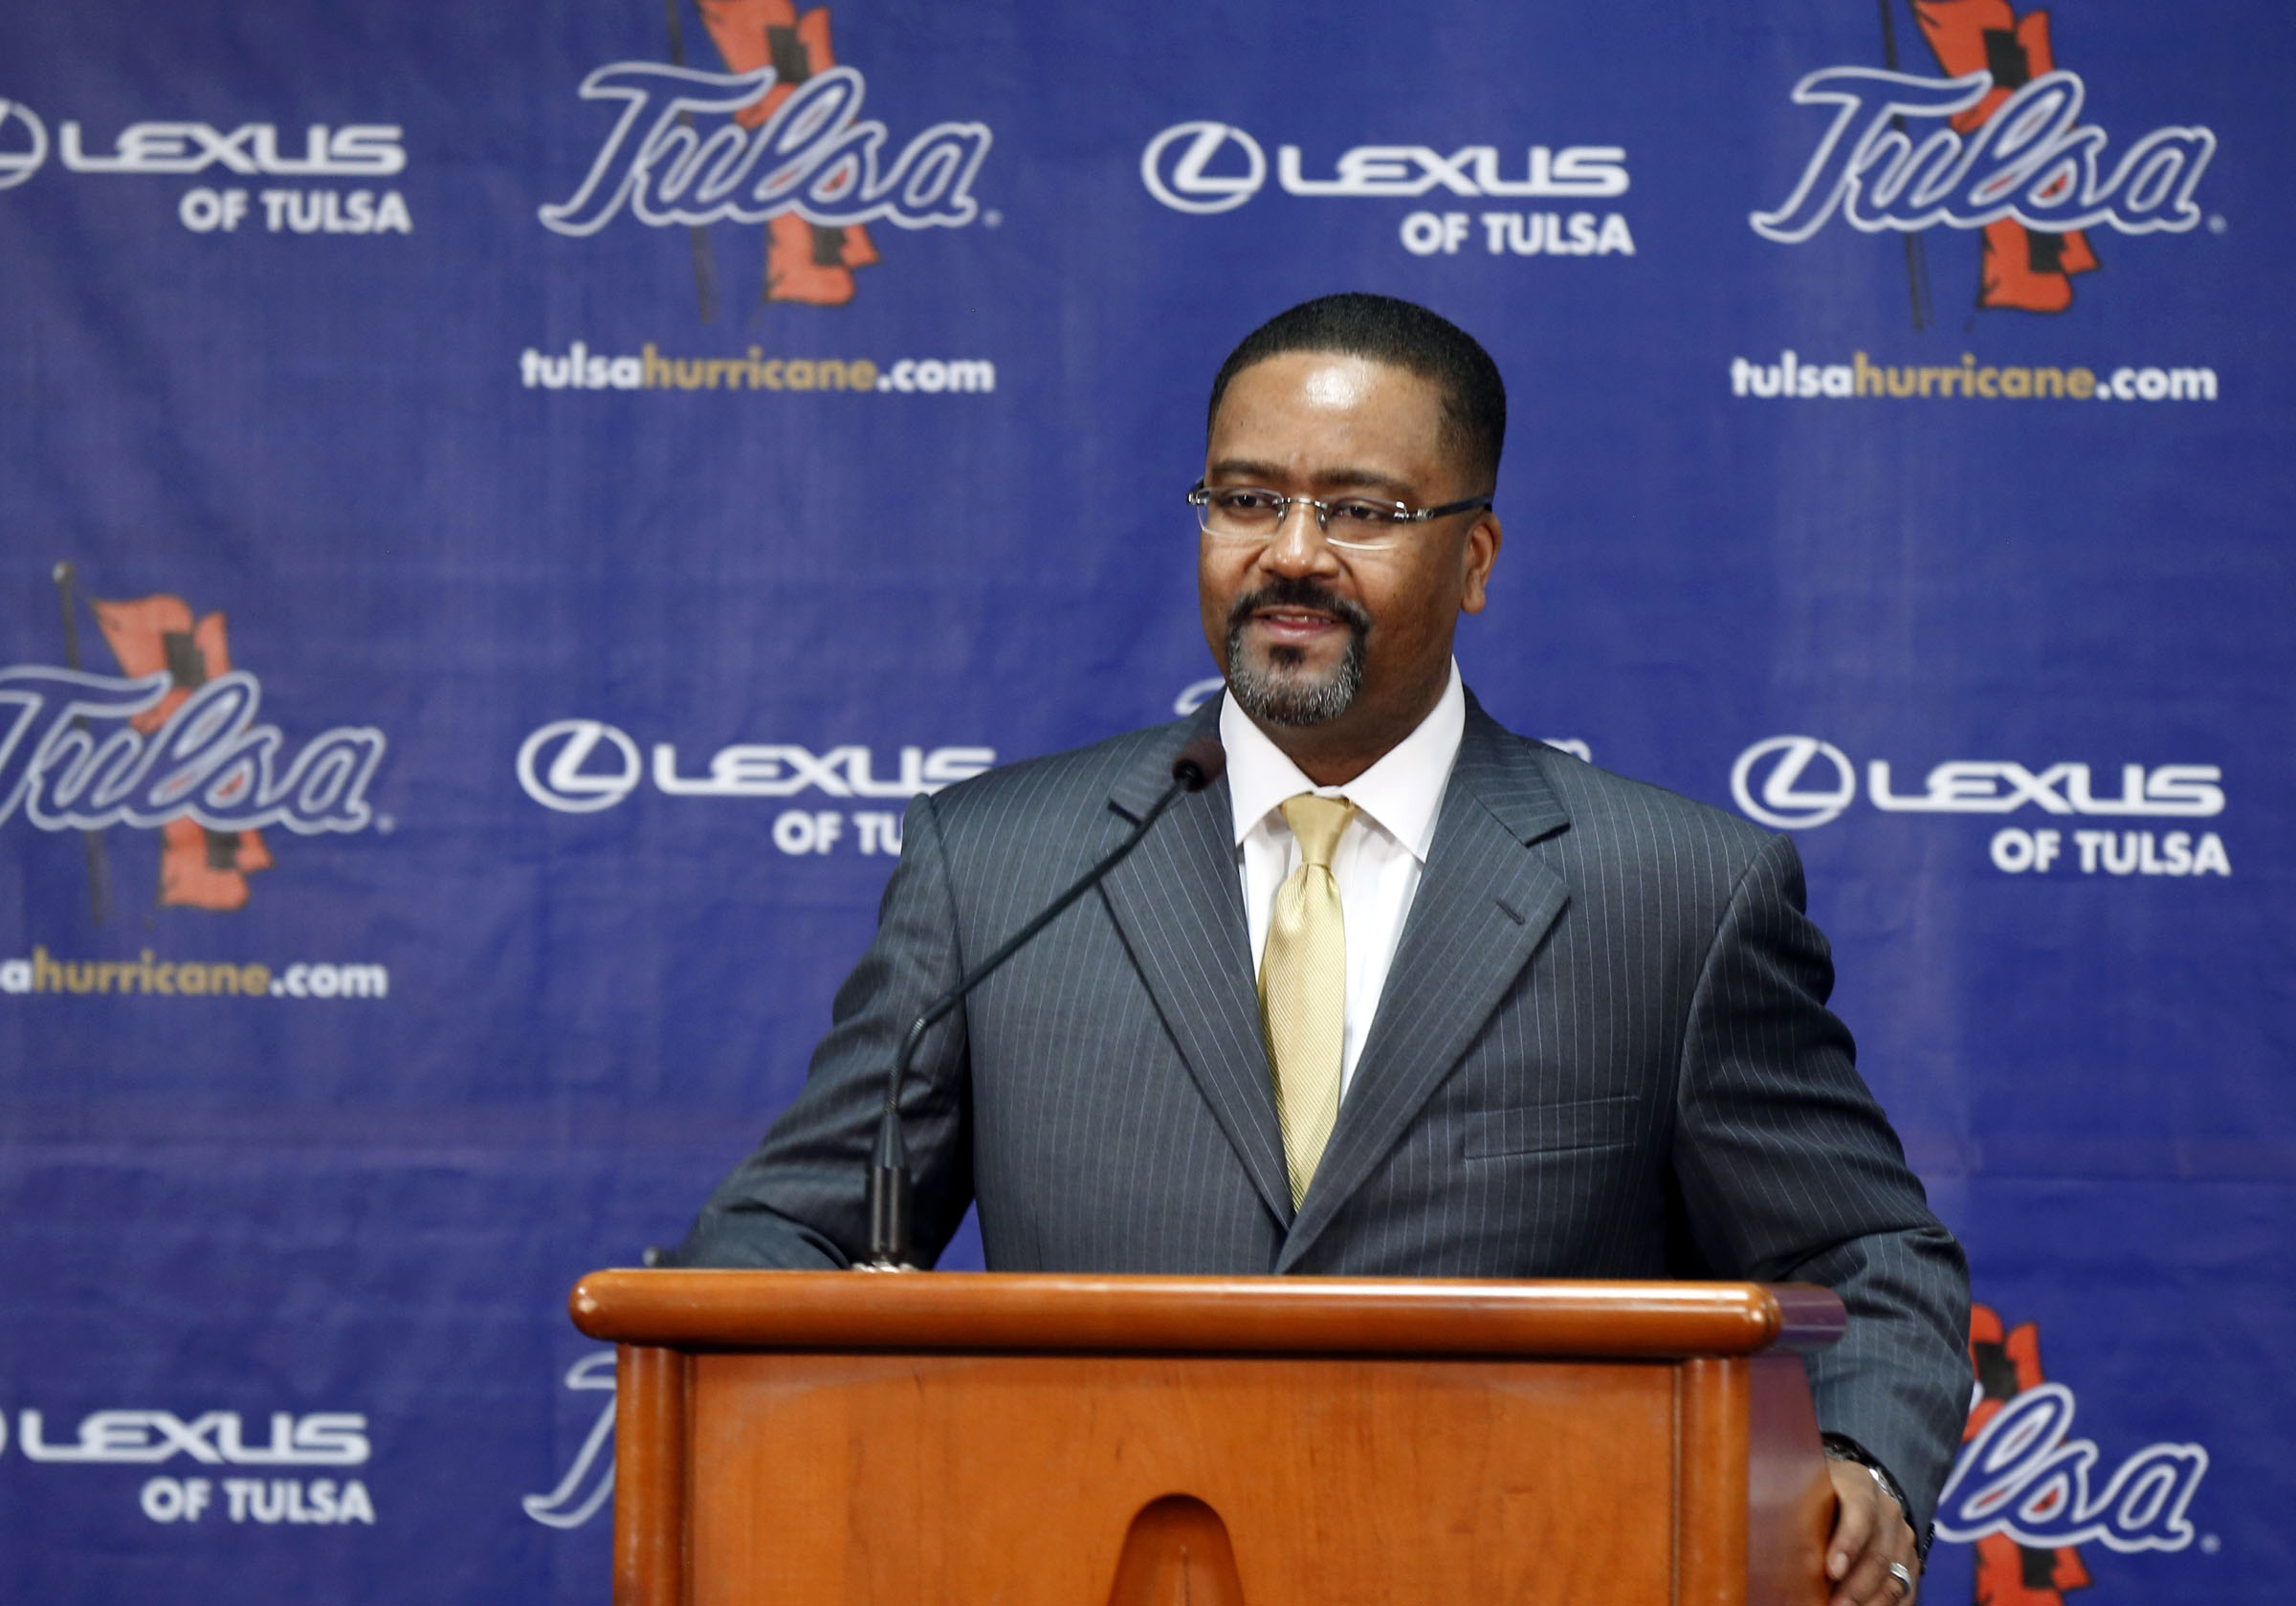 Frank Haith talks to reporters after being named Tulsa men's basketball coach, Friday, April 18, 2014, in Tulsa, Okla. Haith was 76-28 at Missouri. He replaces Danny Manning, who left for Wake Forest after two seasons in Tulsa